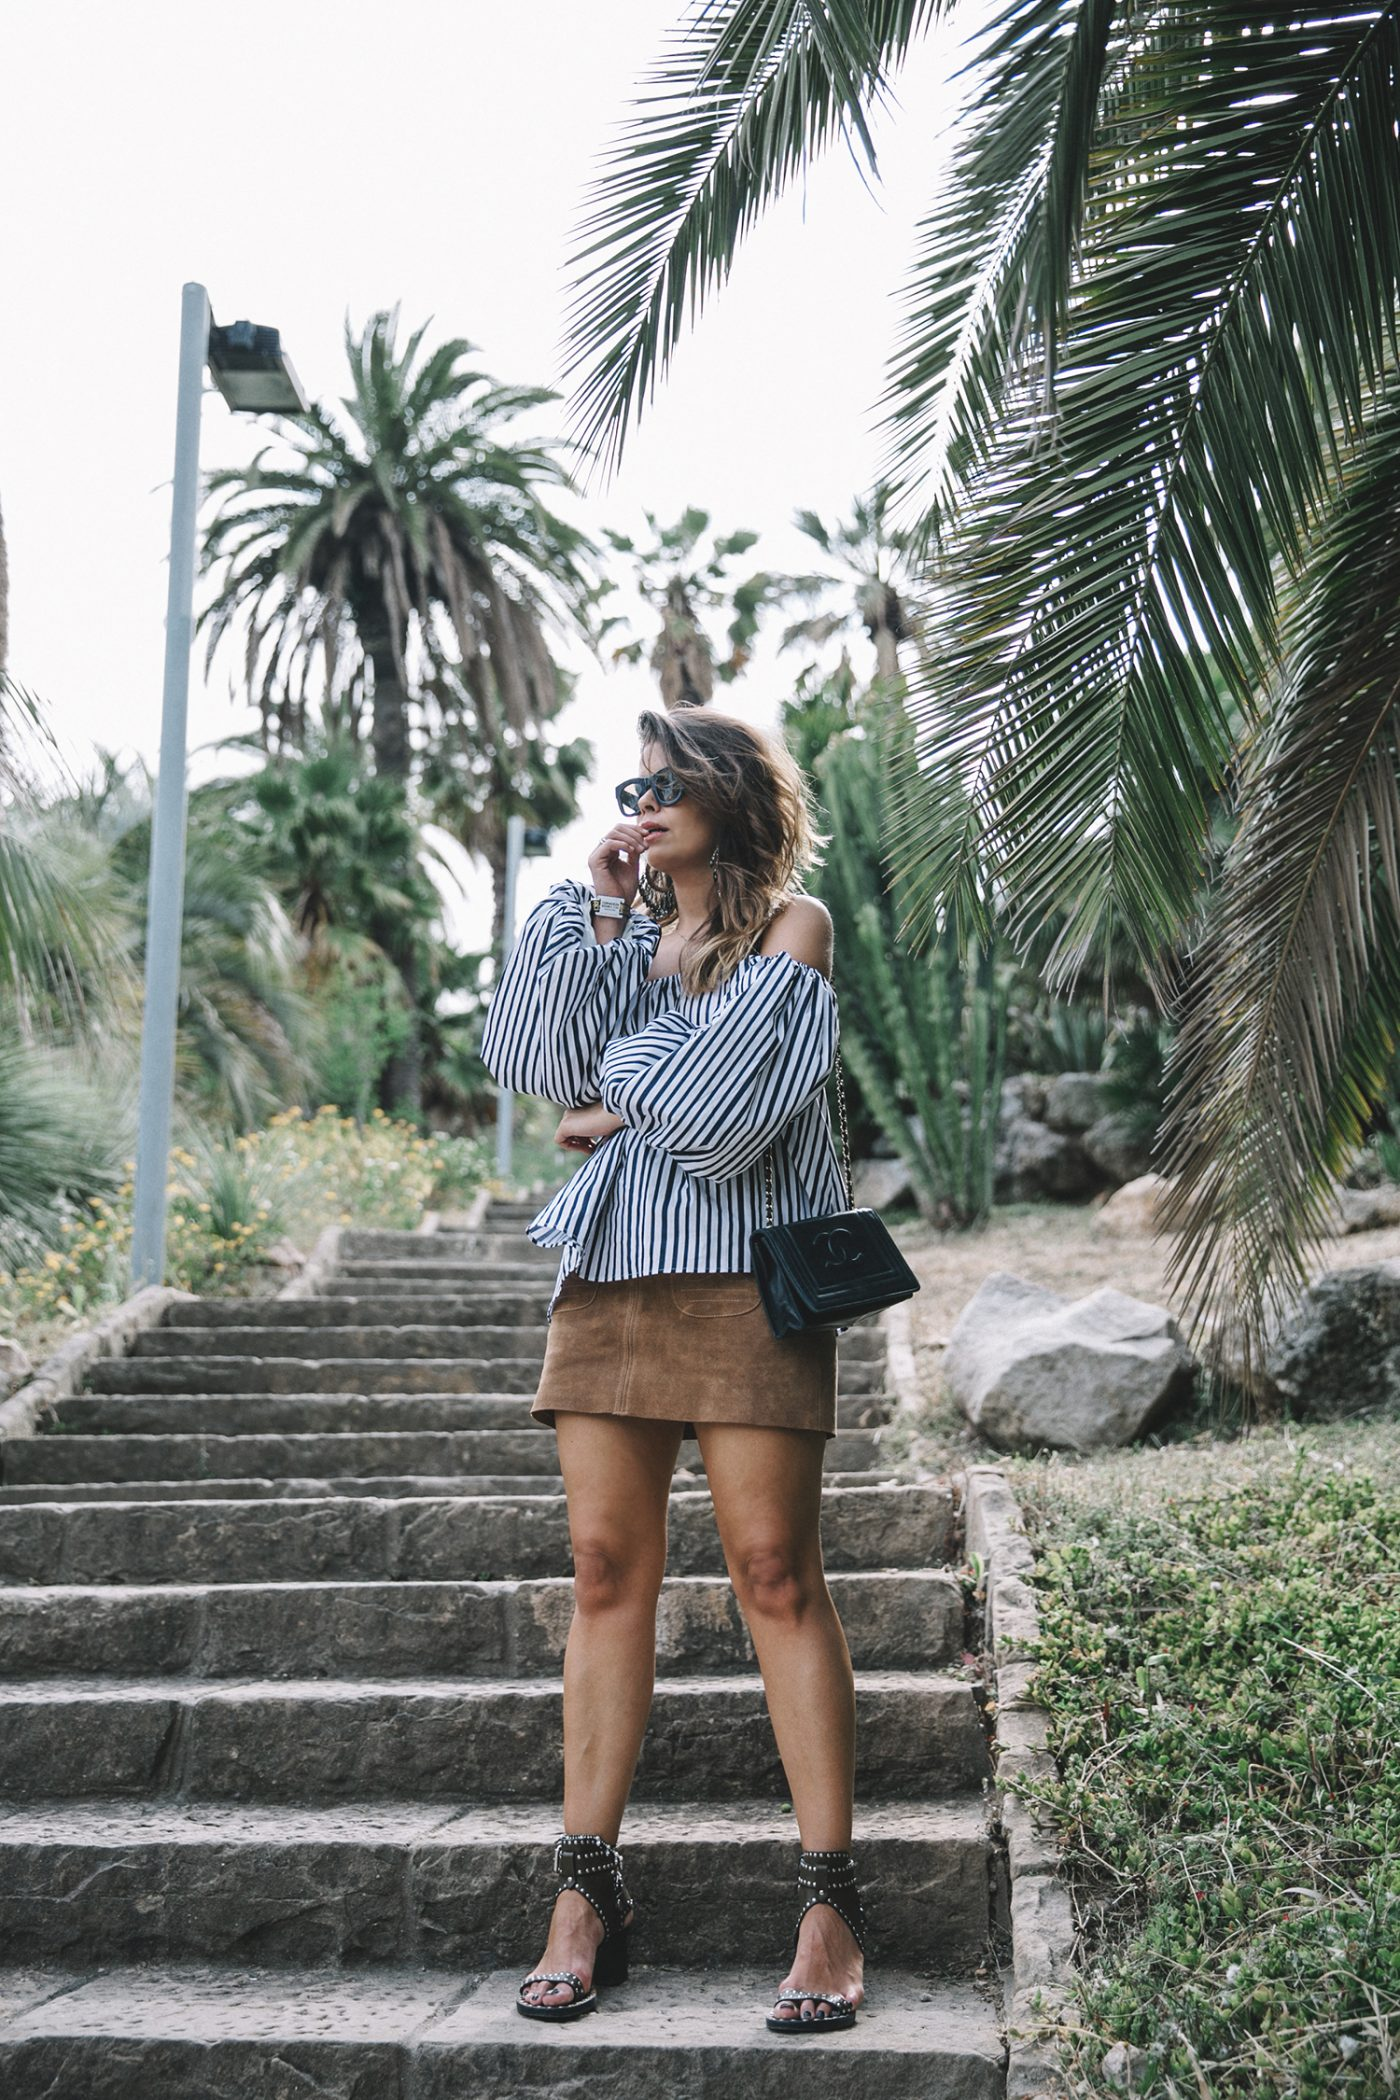 Chicwish-Off_The_Shoulders_Top-Outfit-Suede_Skirt-Free_People-Isabel_marant_Sandals-Chanel_Vintage_Bag-Statement_Earrings-Boho-Collage_Vintage-36-1400x2100